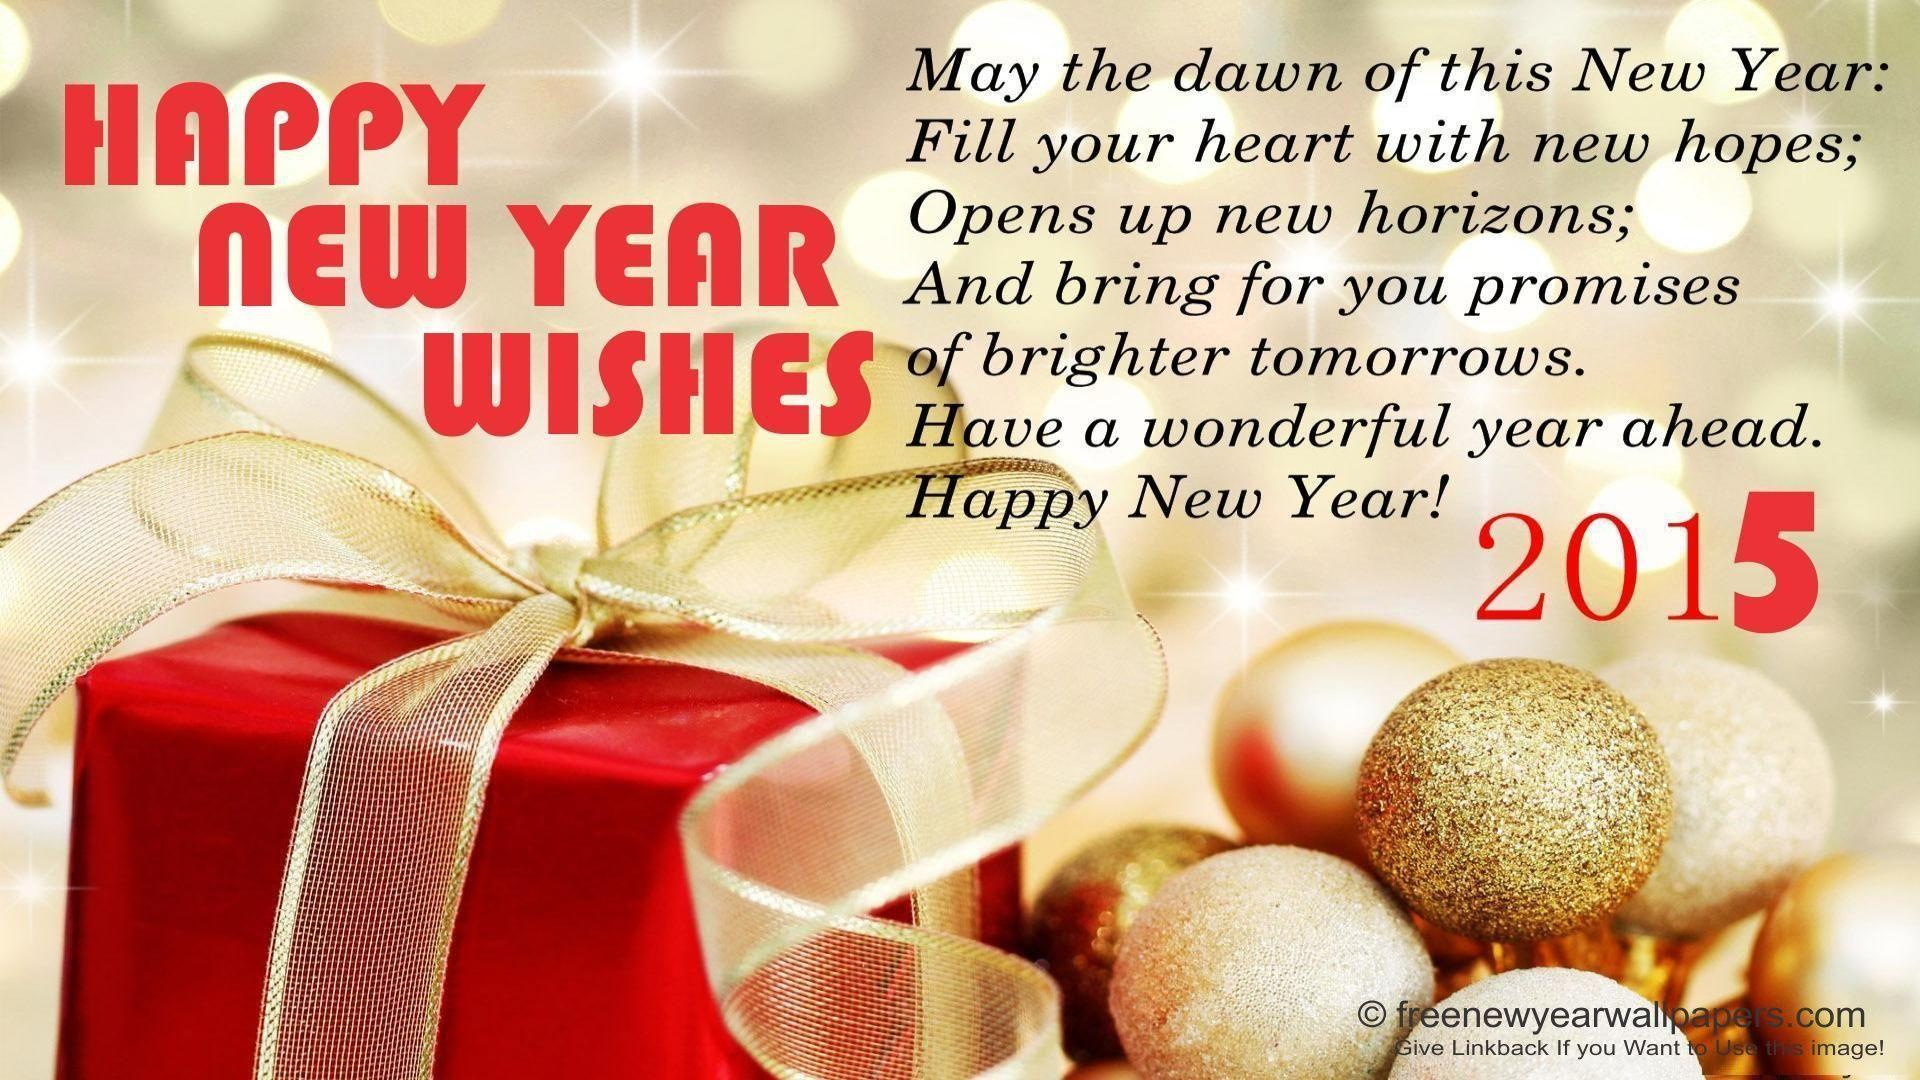 New Year Wishes 2015 Wallpapers Hd Wallpaper Cave